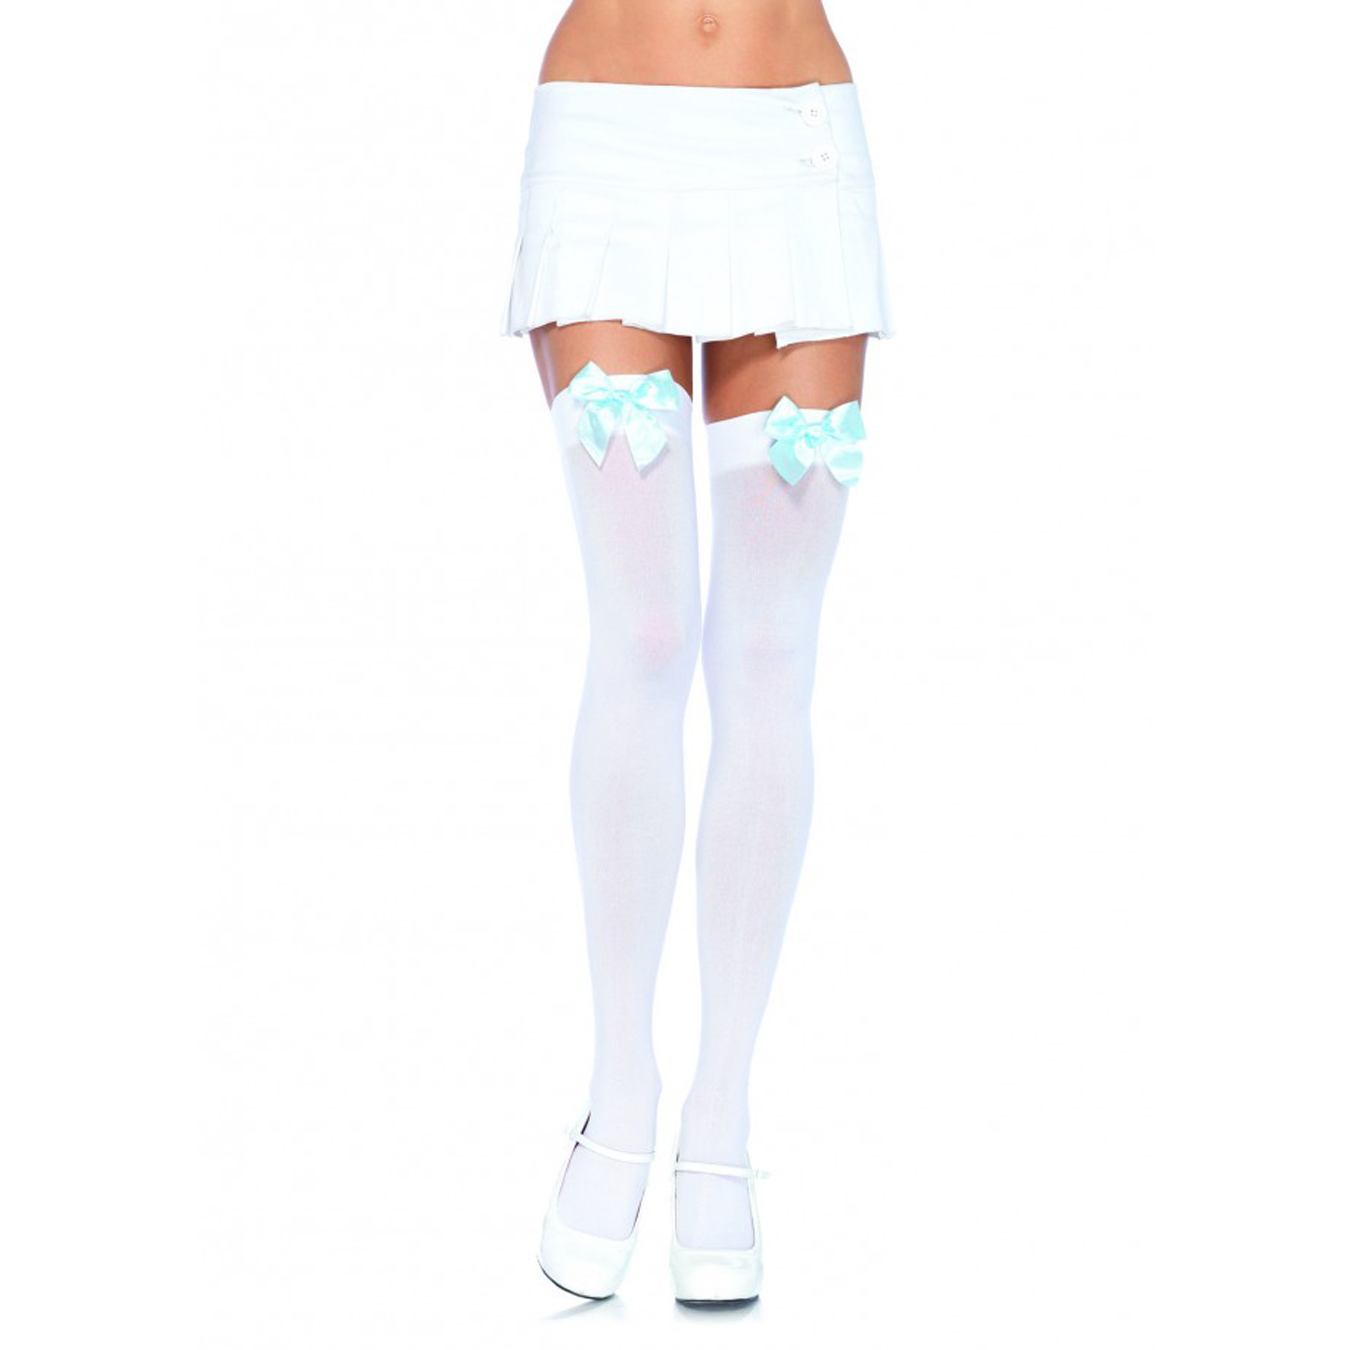 c225eb57a Sheer Opaque Thigh Highs Satin Bow Stockings School Nylons Lingerie  Halloween